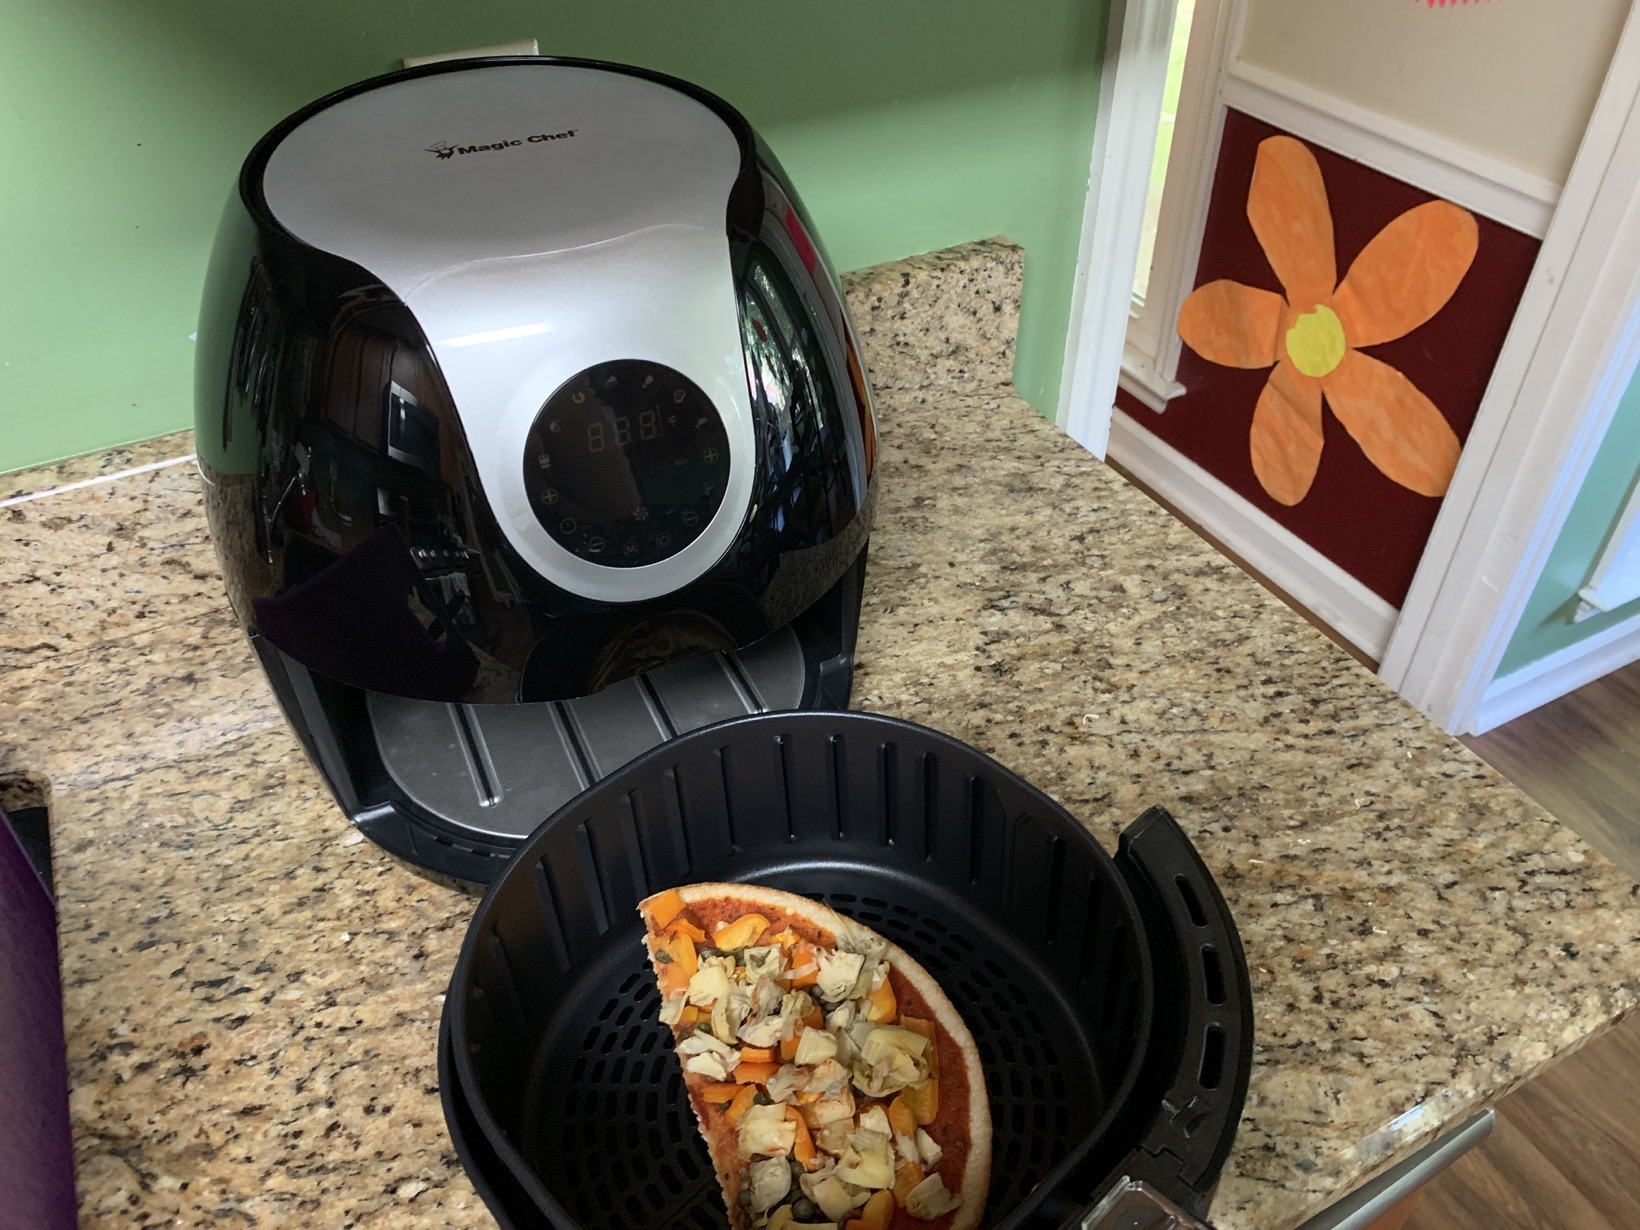 reheating pizza in NewAir Magic Chef® Digital XL Air Fryer